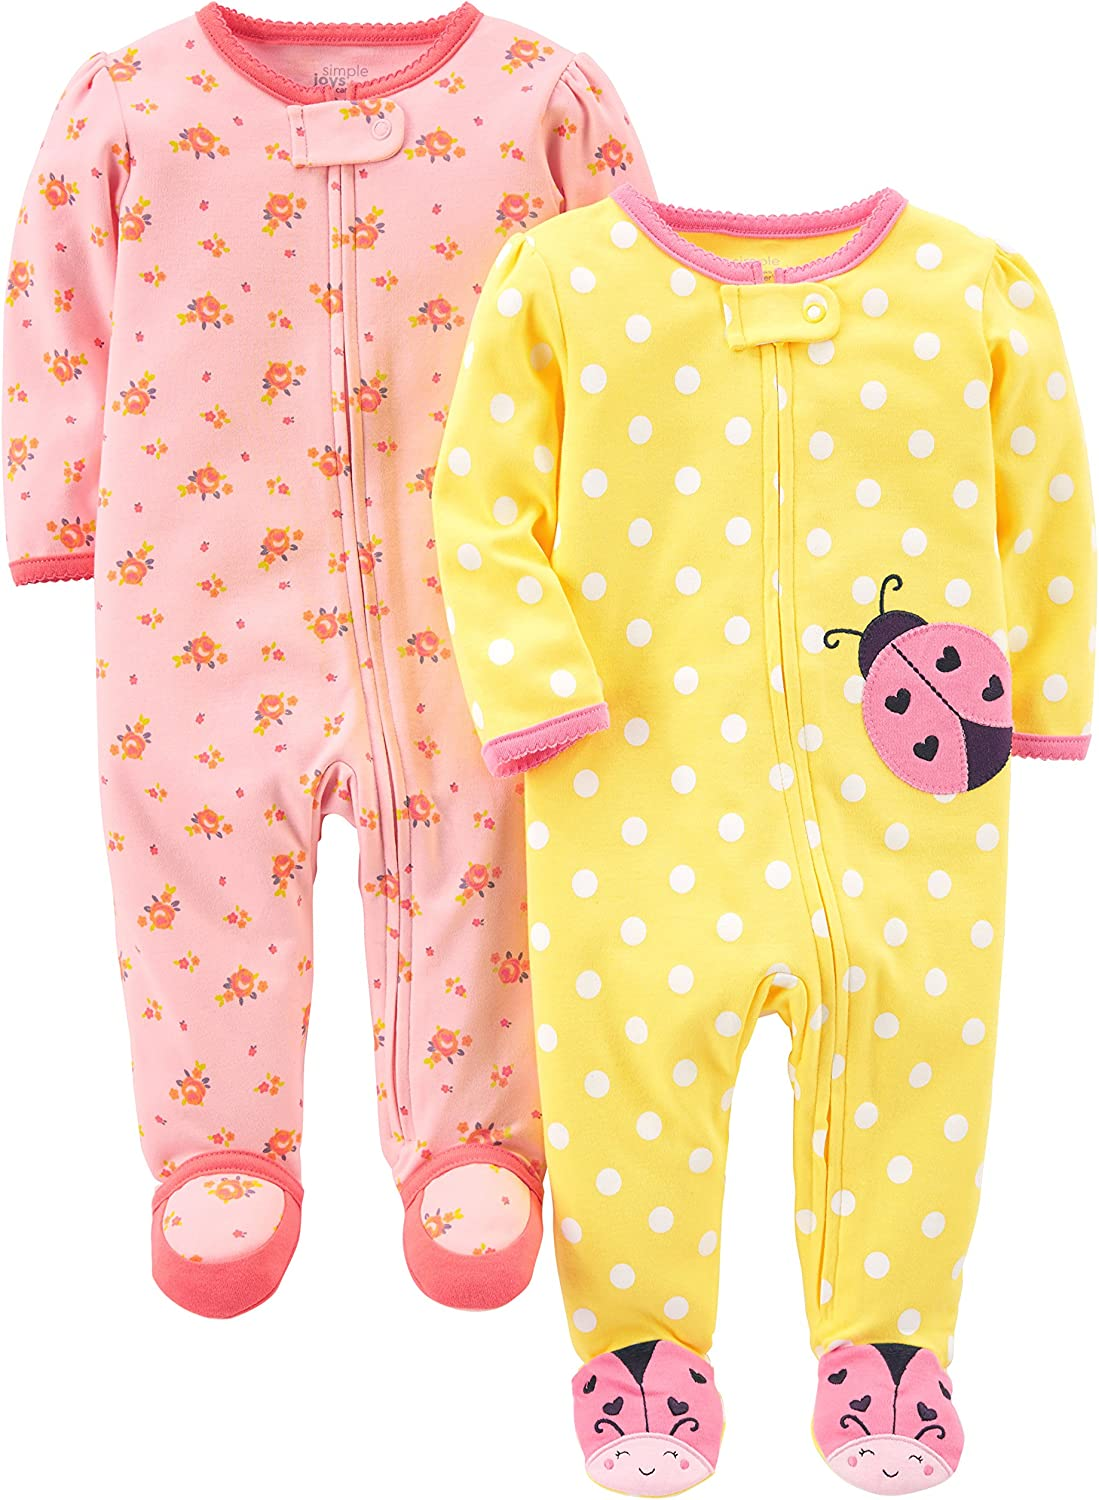 Simple Joys by Carters Baby-Girls 2-Pack Cotton Footed Sleep and Play